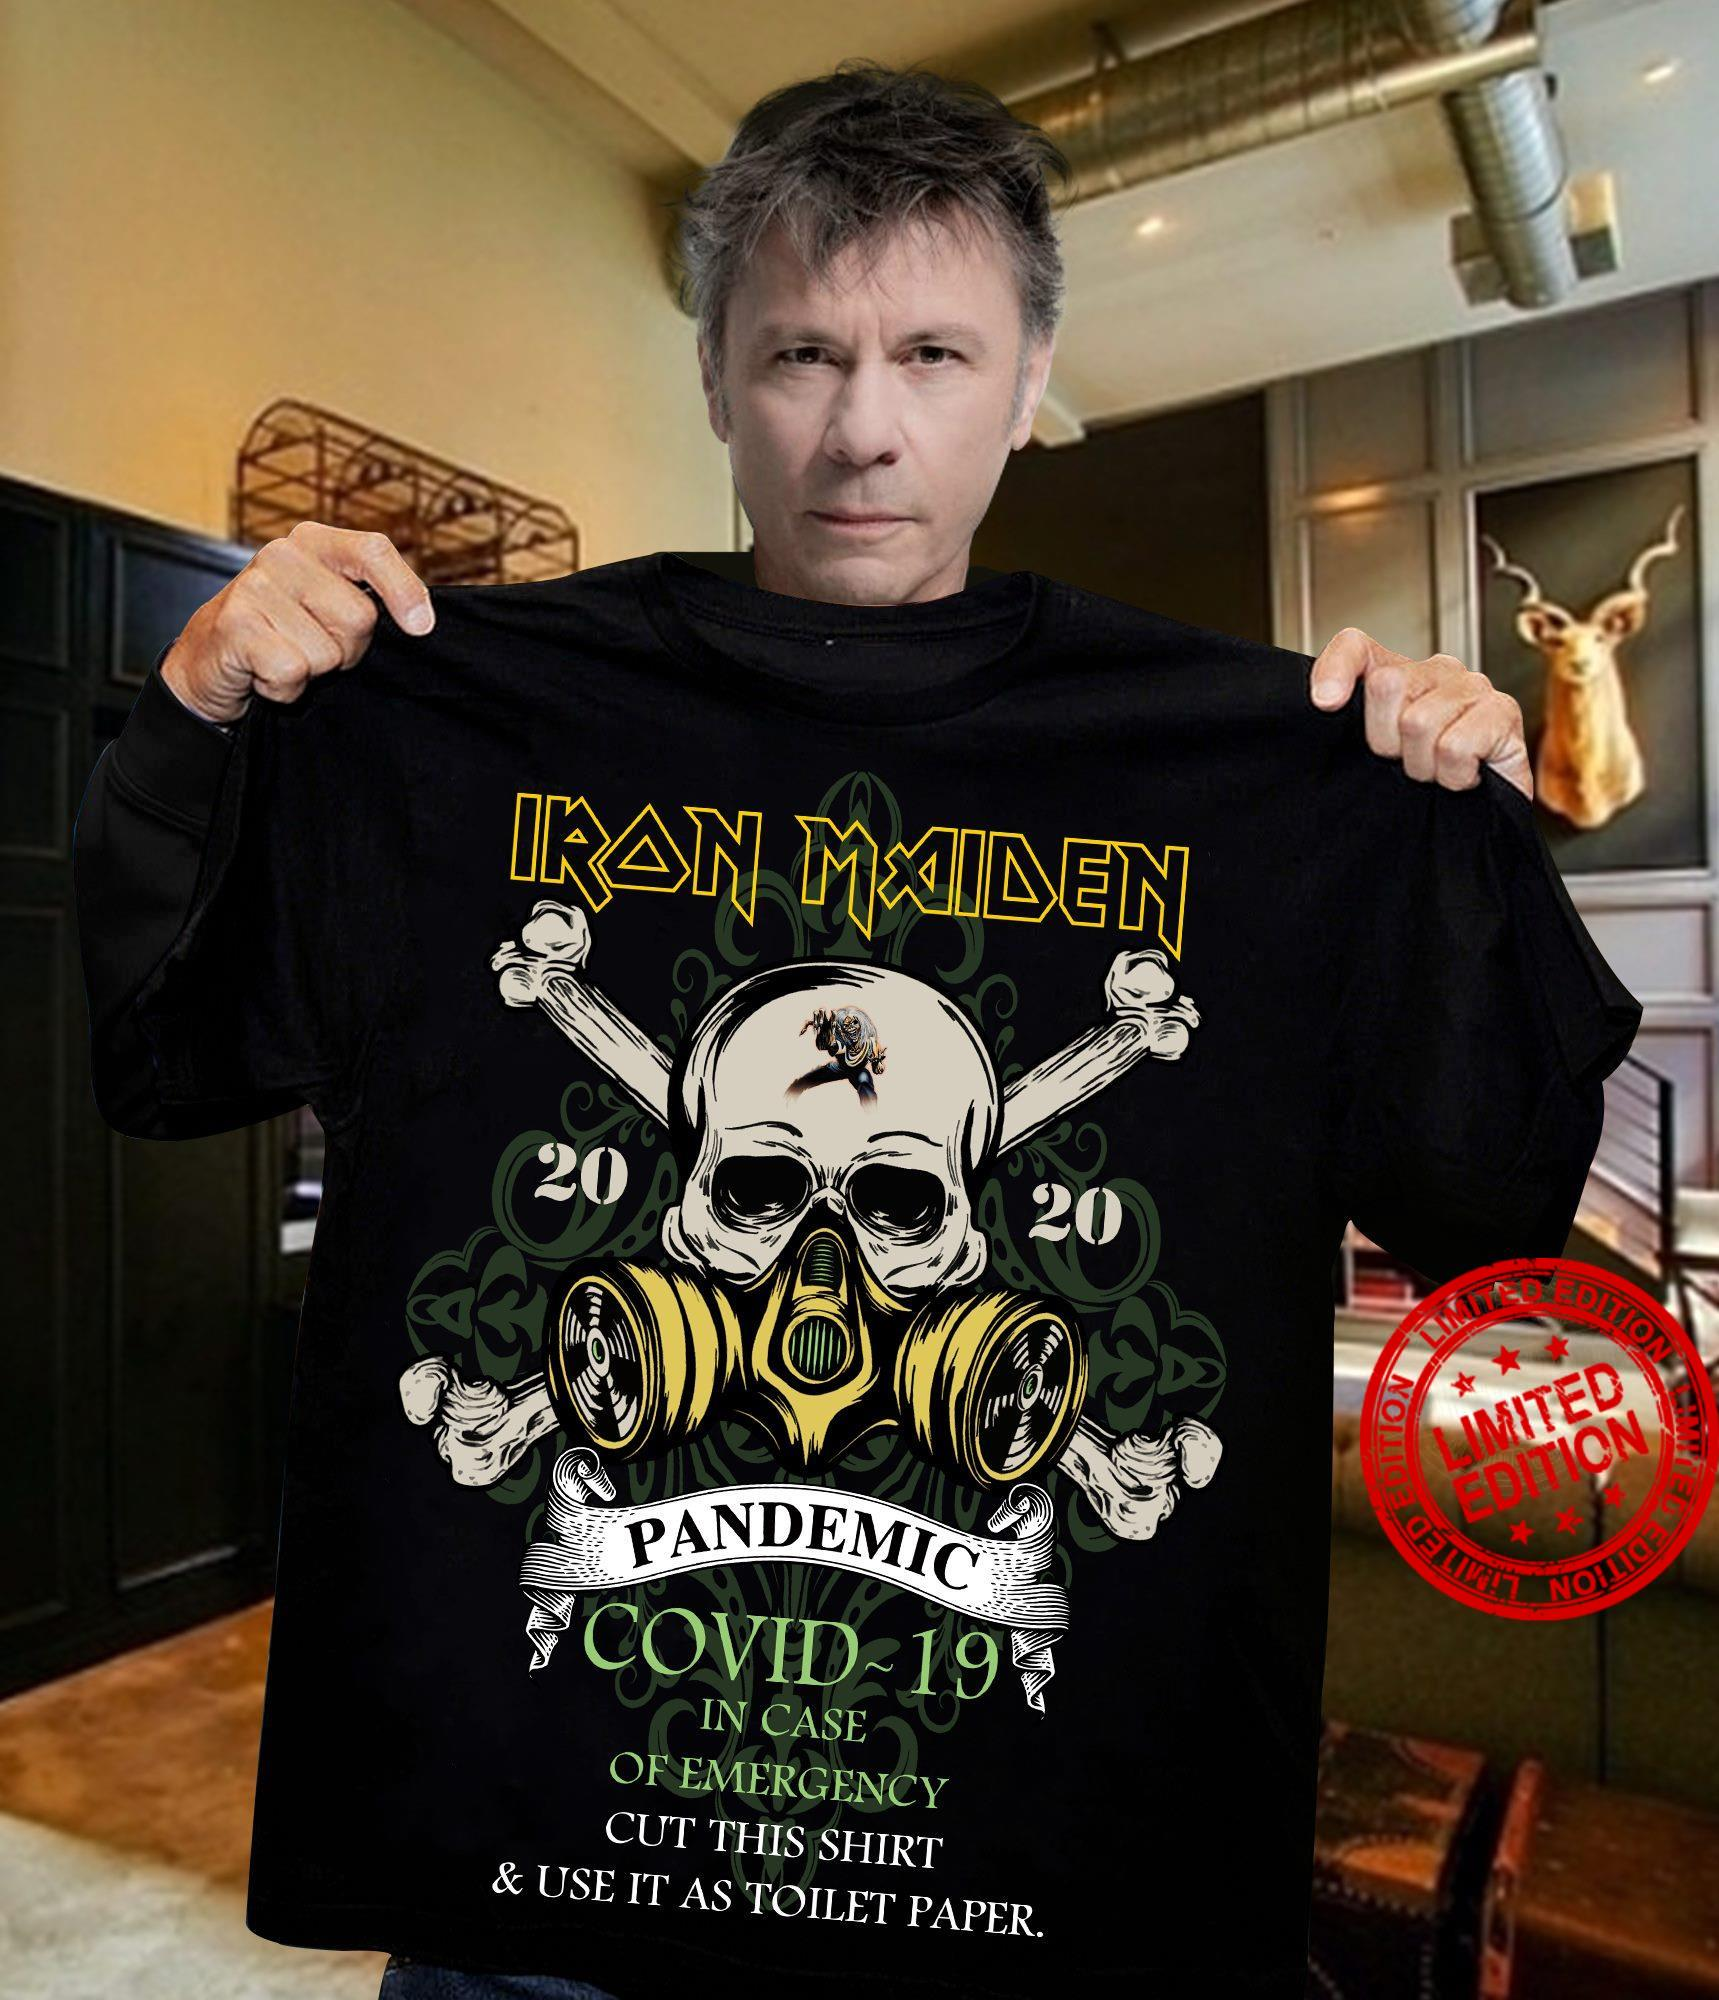 Iron Maiden Pandemic Covid-19 In Case Of Emergency Cut This Shirt & Use It As Toilet Paper Shirt